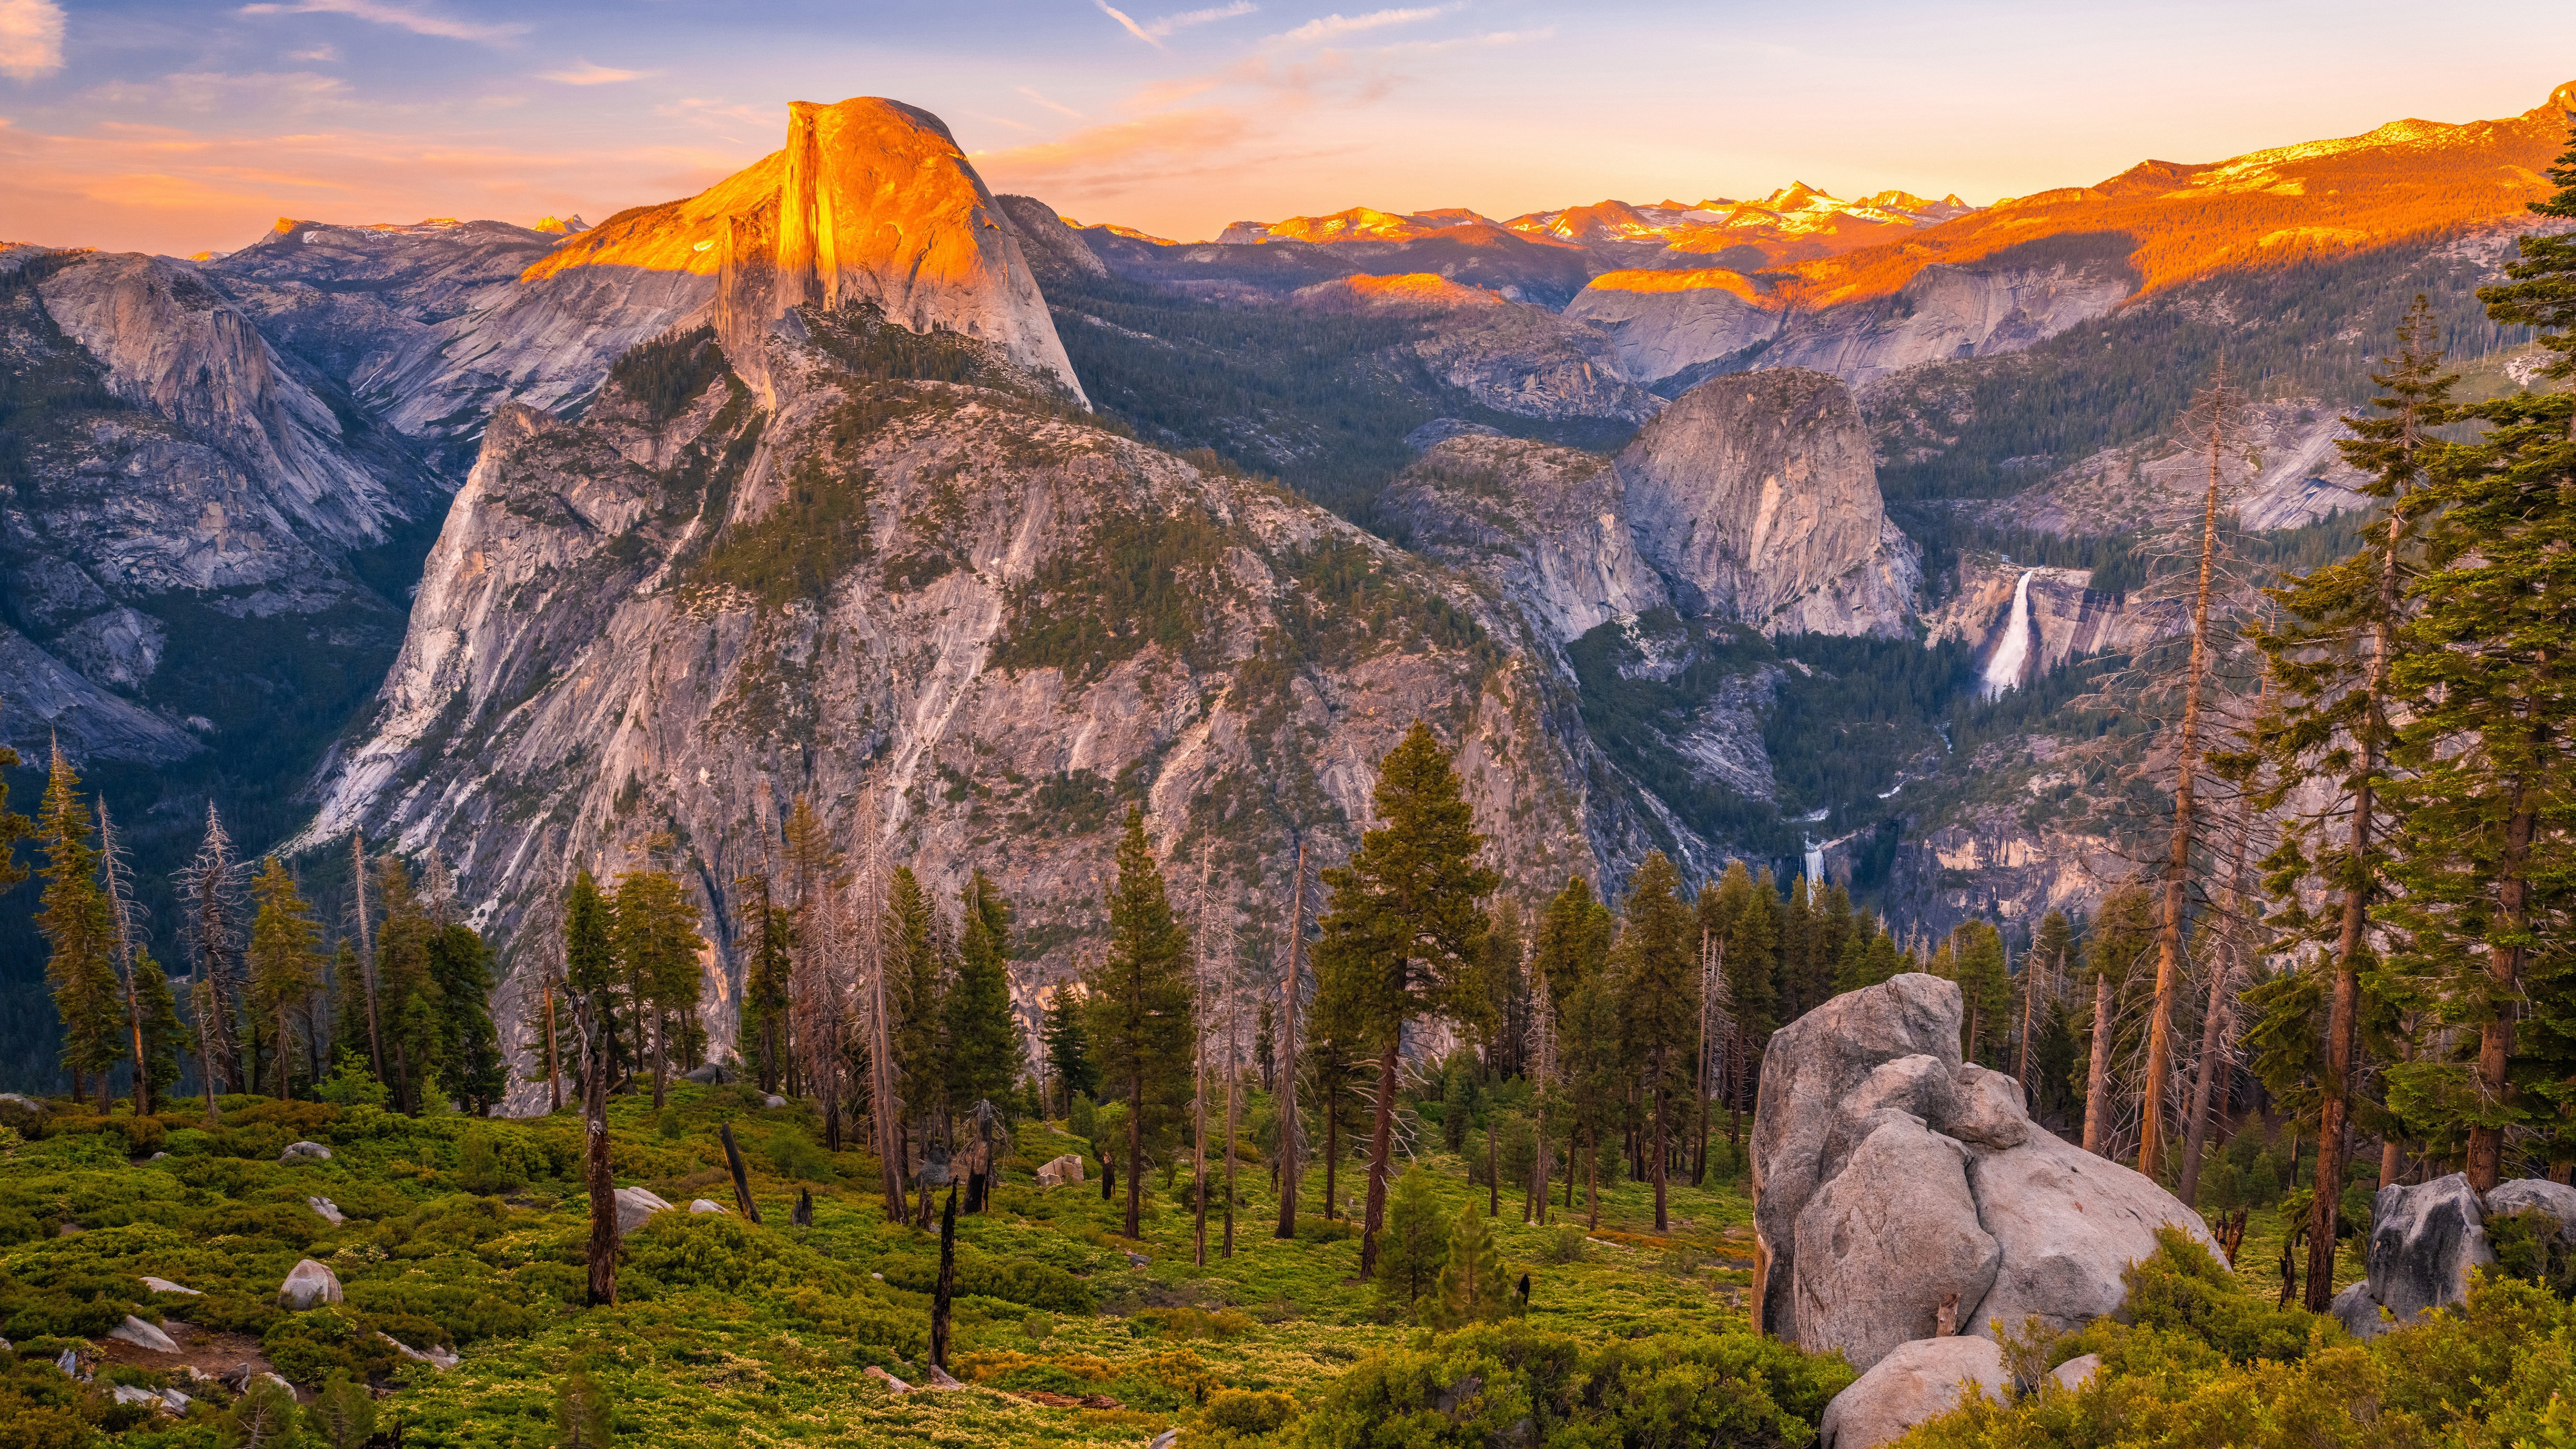 yosemite national park 4k 5k hd wallpaper 301431597499011